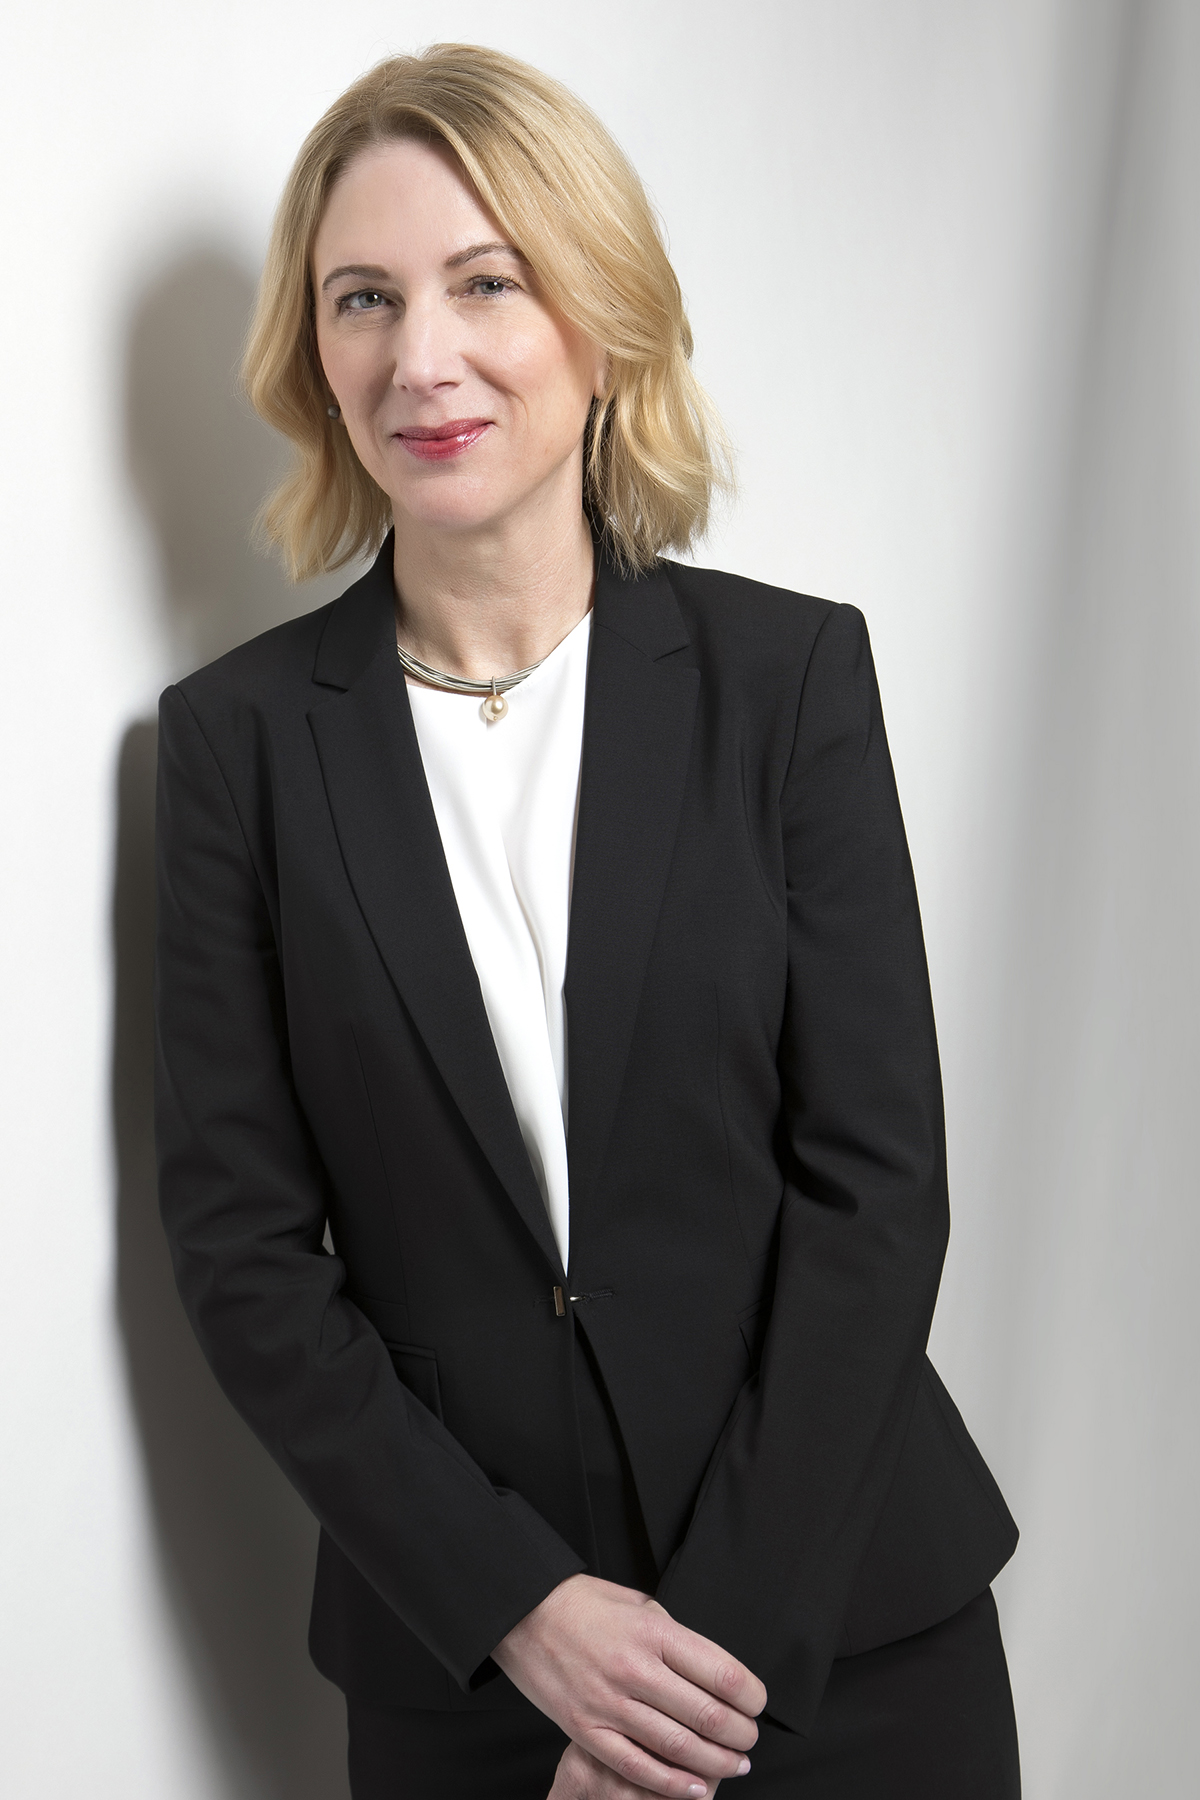 Lasher Holzapfel Sperry & Ebberson Announces Appointment of Lisa Ann Sharpe as Co-Chair  of American Academy of Matrimonial Lawyers Business Valuation Resources (BVR) Committee